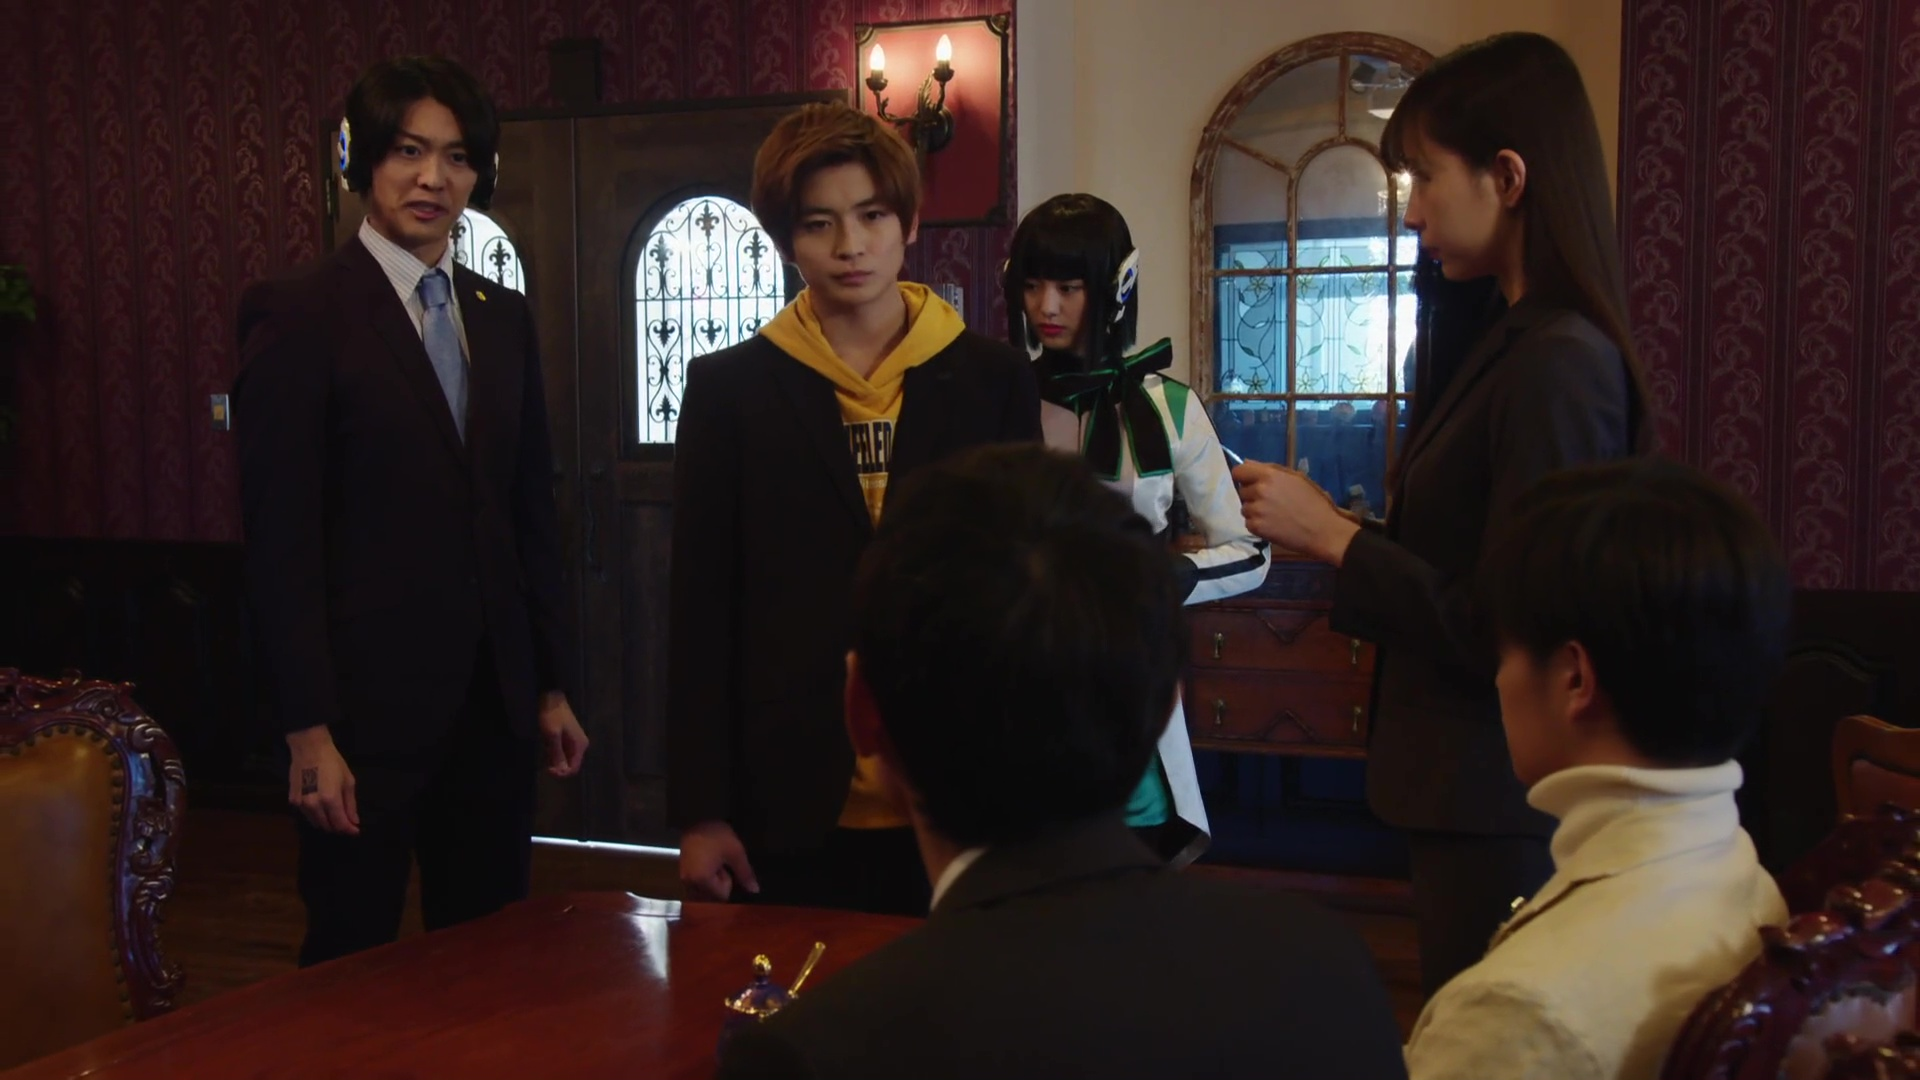 Kamen Rider Zero One Episode 21 Recap